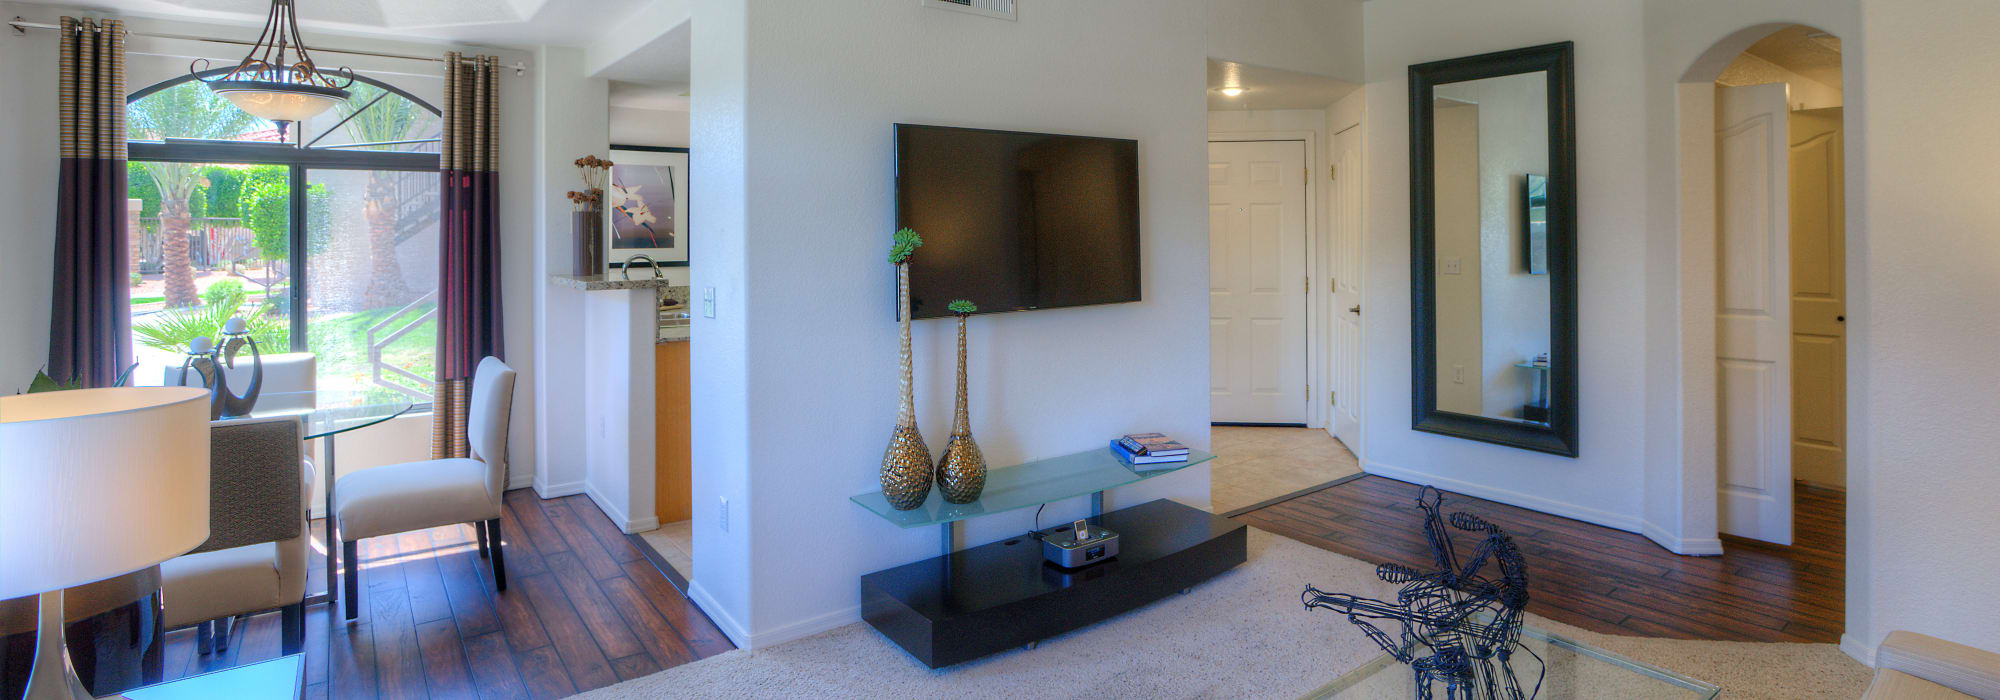 Living room and dining room at San Lagos in Glendale, Arizona